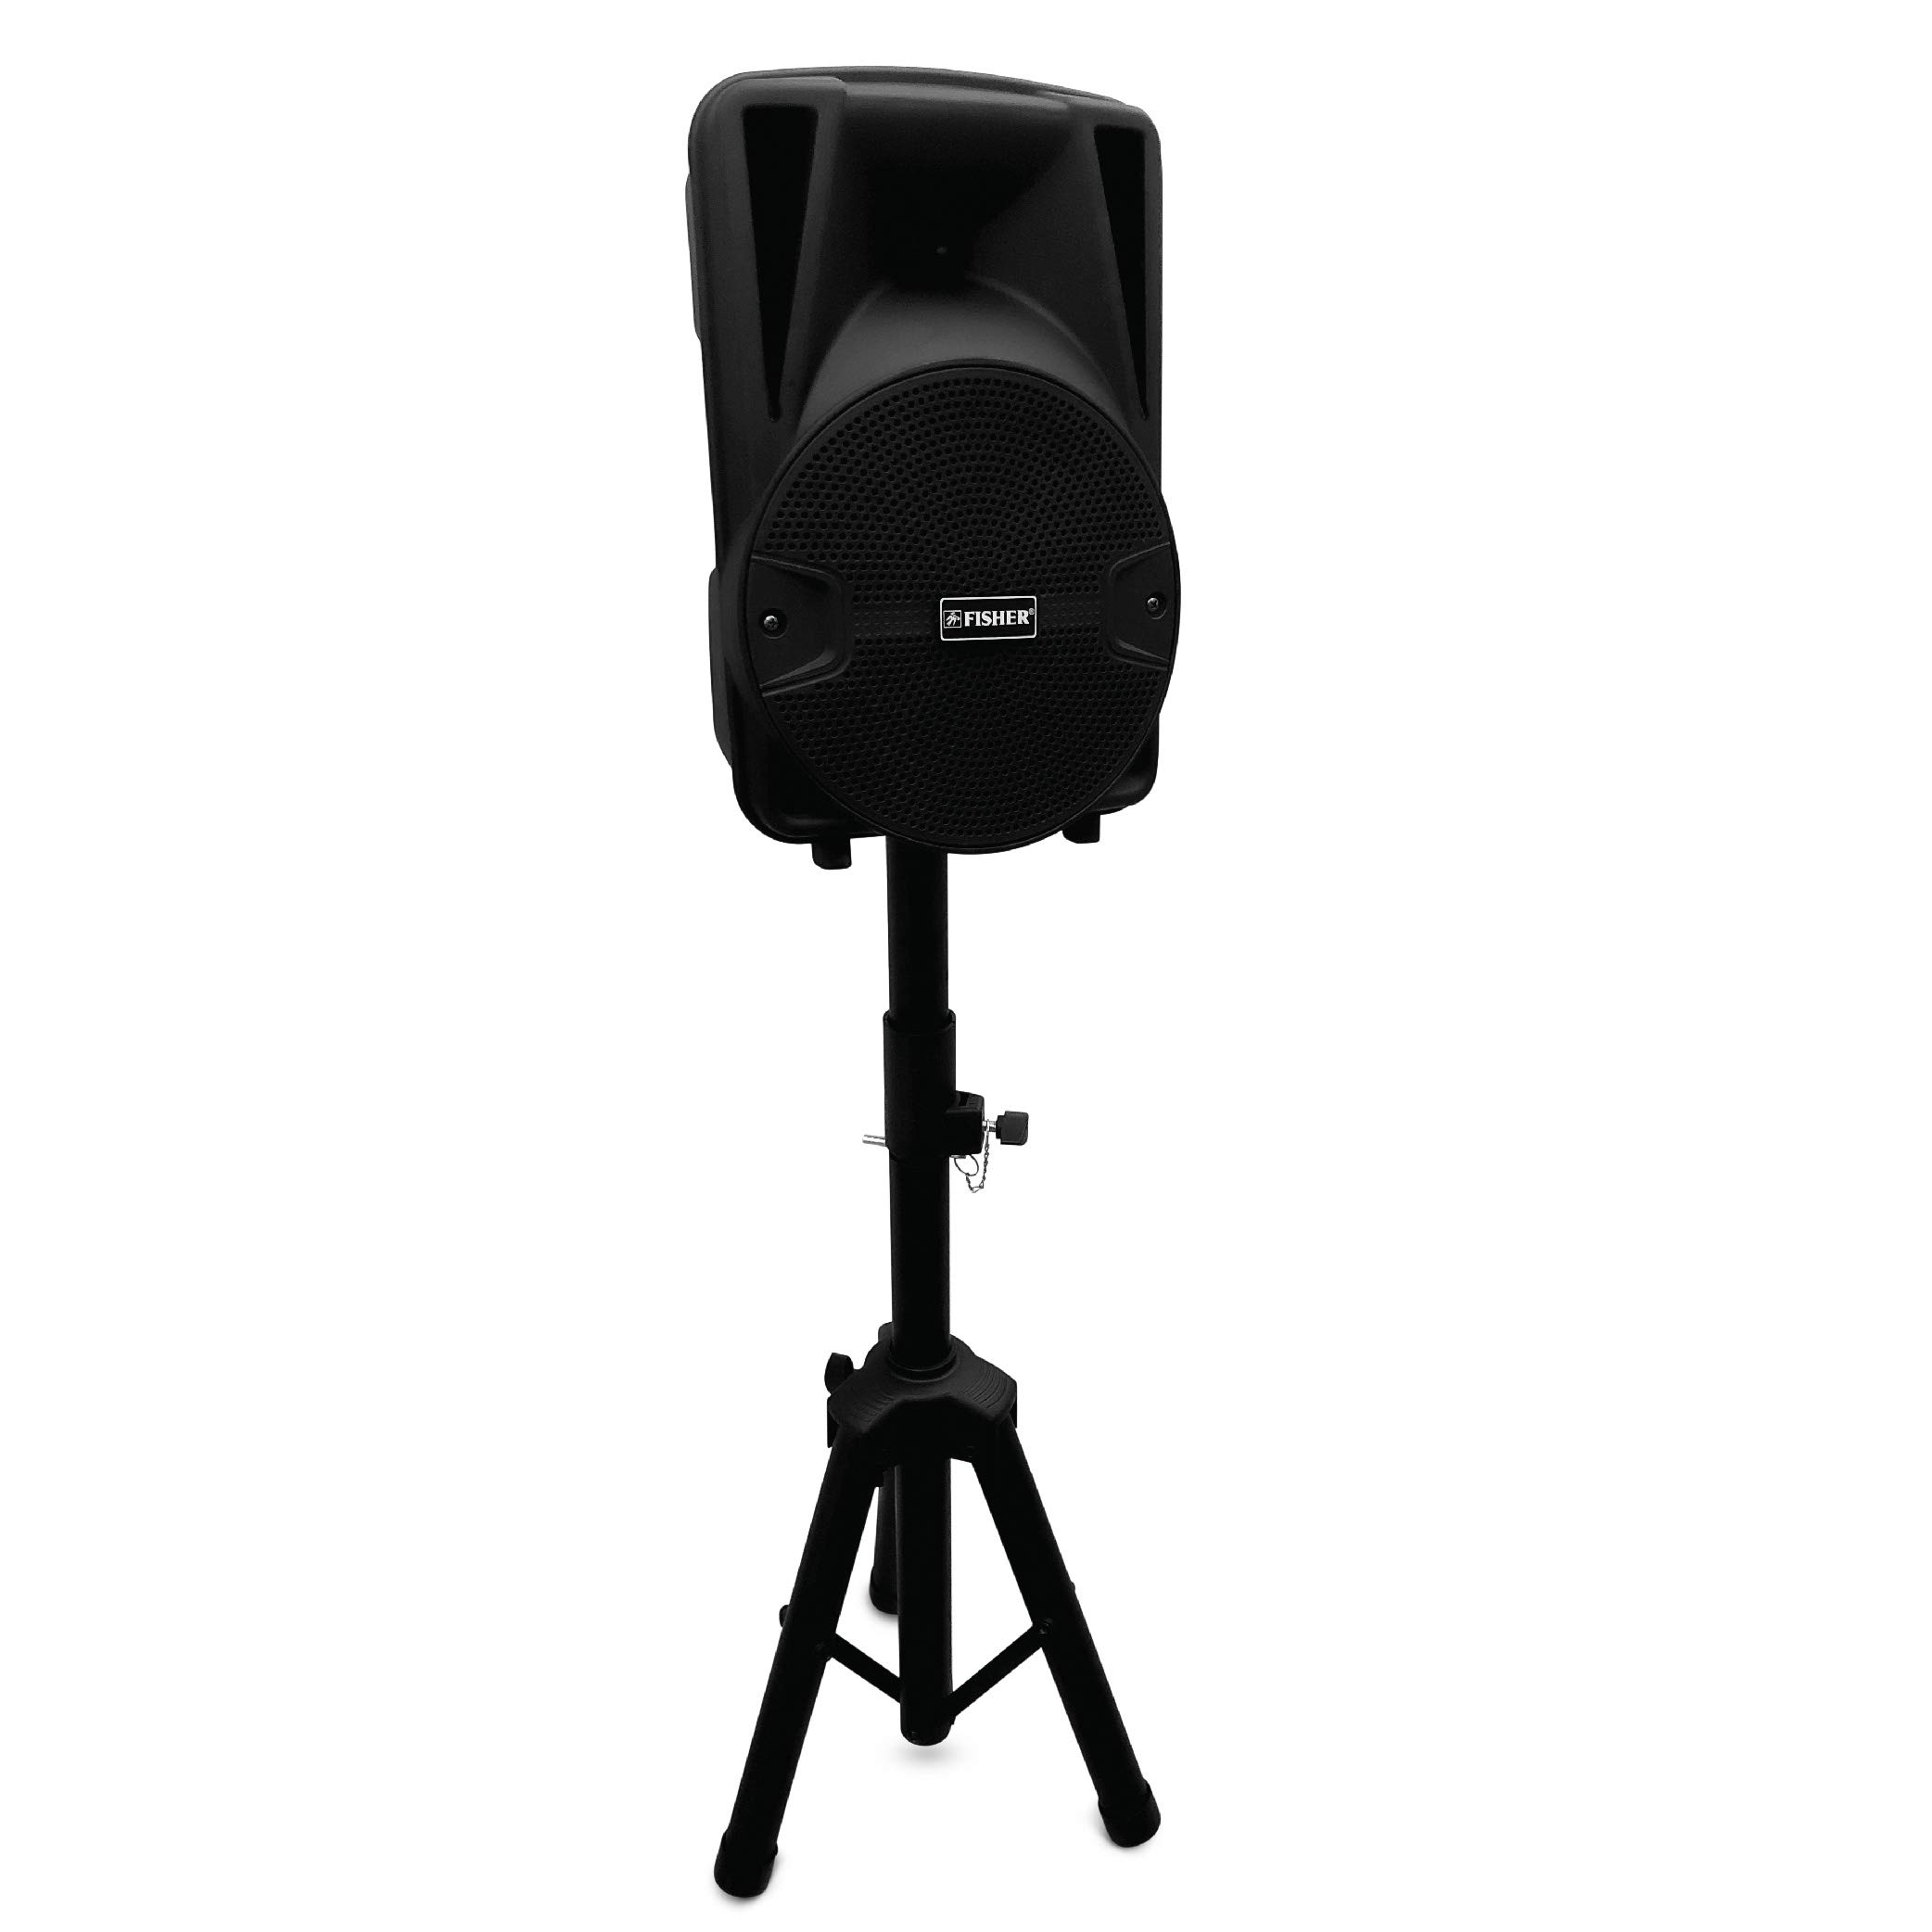 Fisher Compact 8-Inch Portable Speaker System With Wired Microphone, Tripod Speaker Stand and Remote Control, Bluetooth/FM Radio/USB/AUX/Microphone Inputs